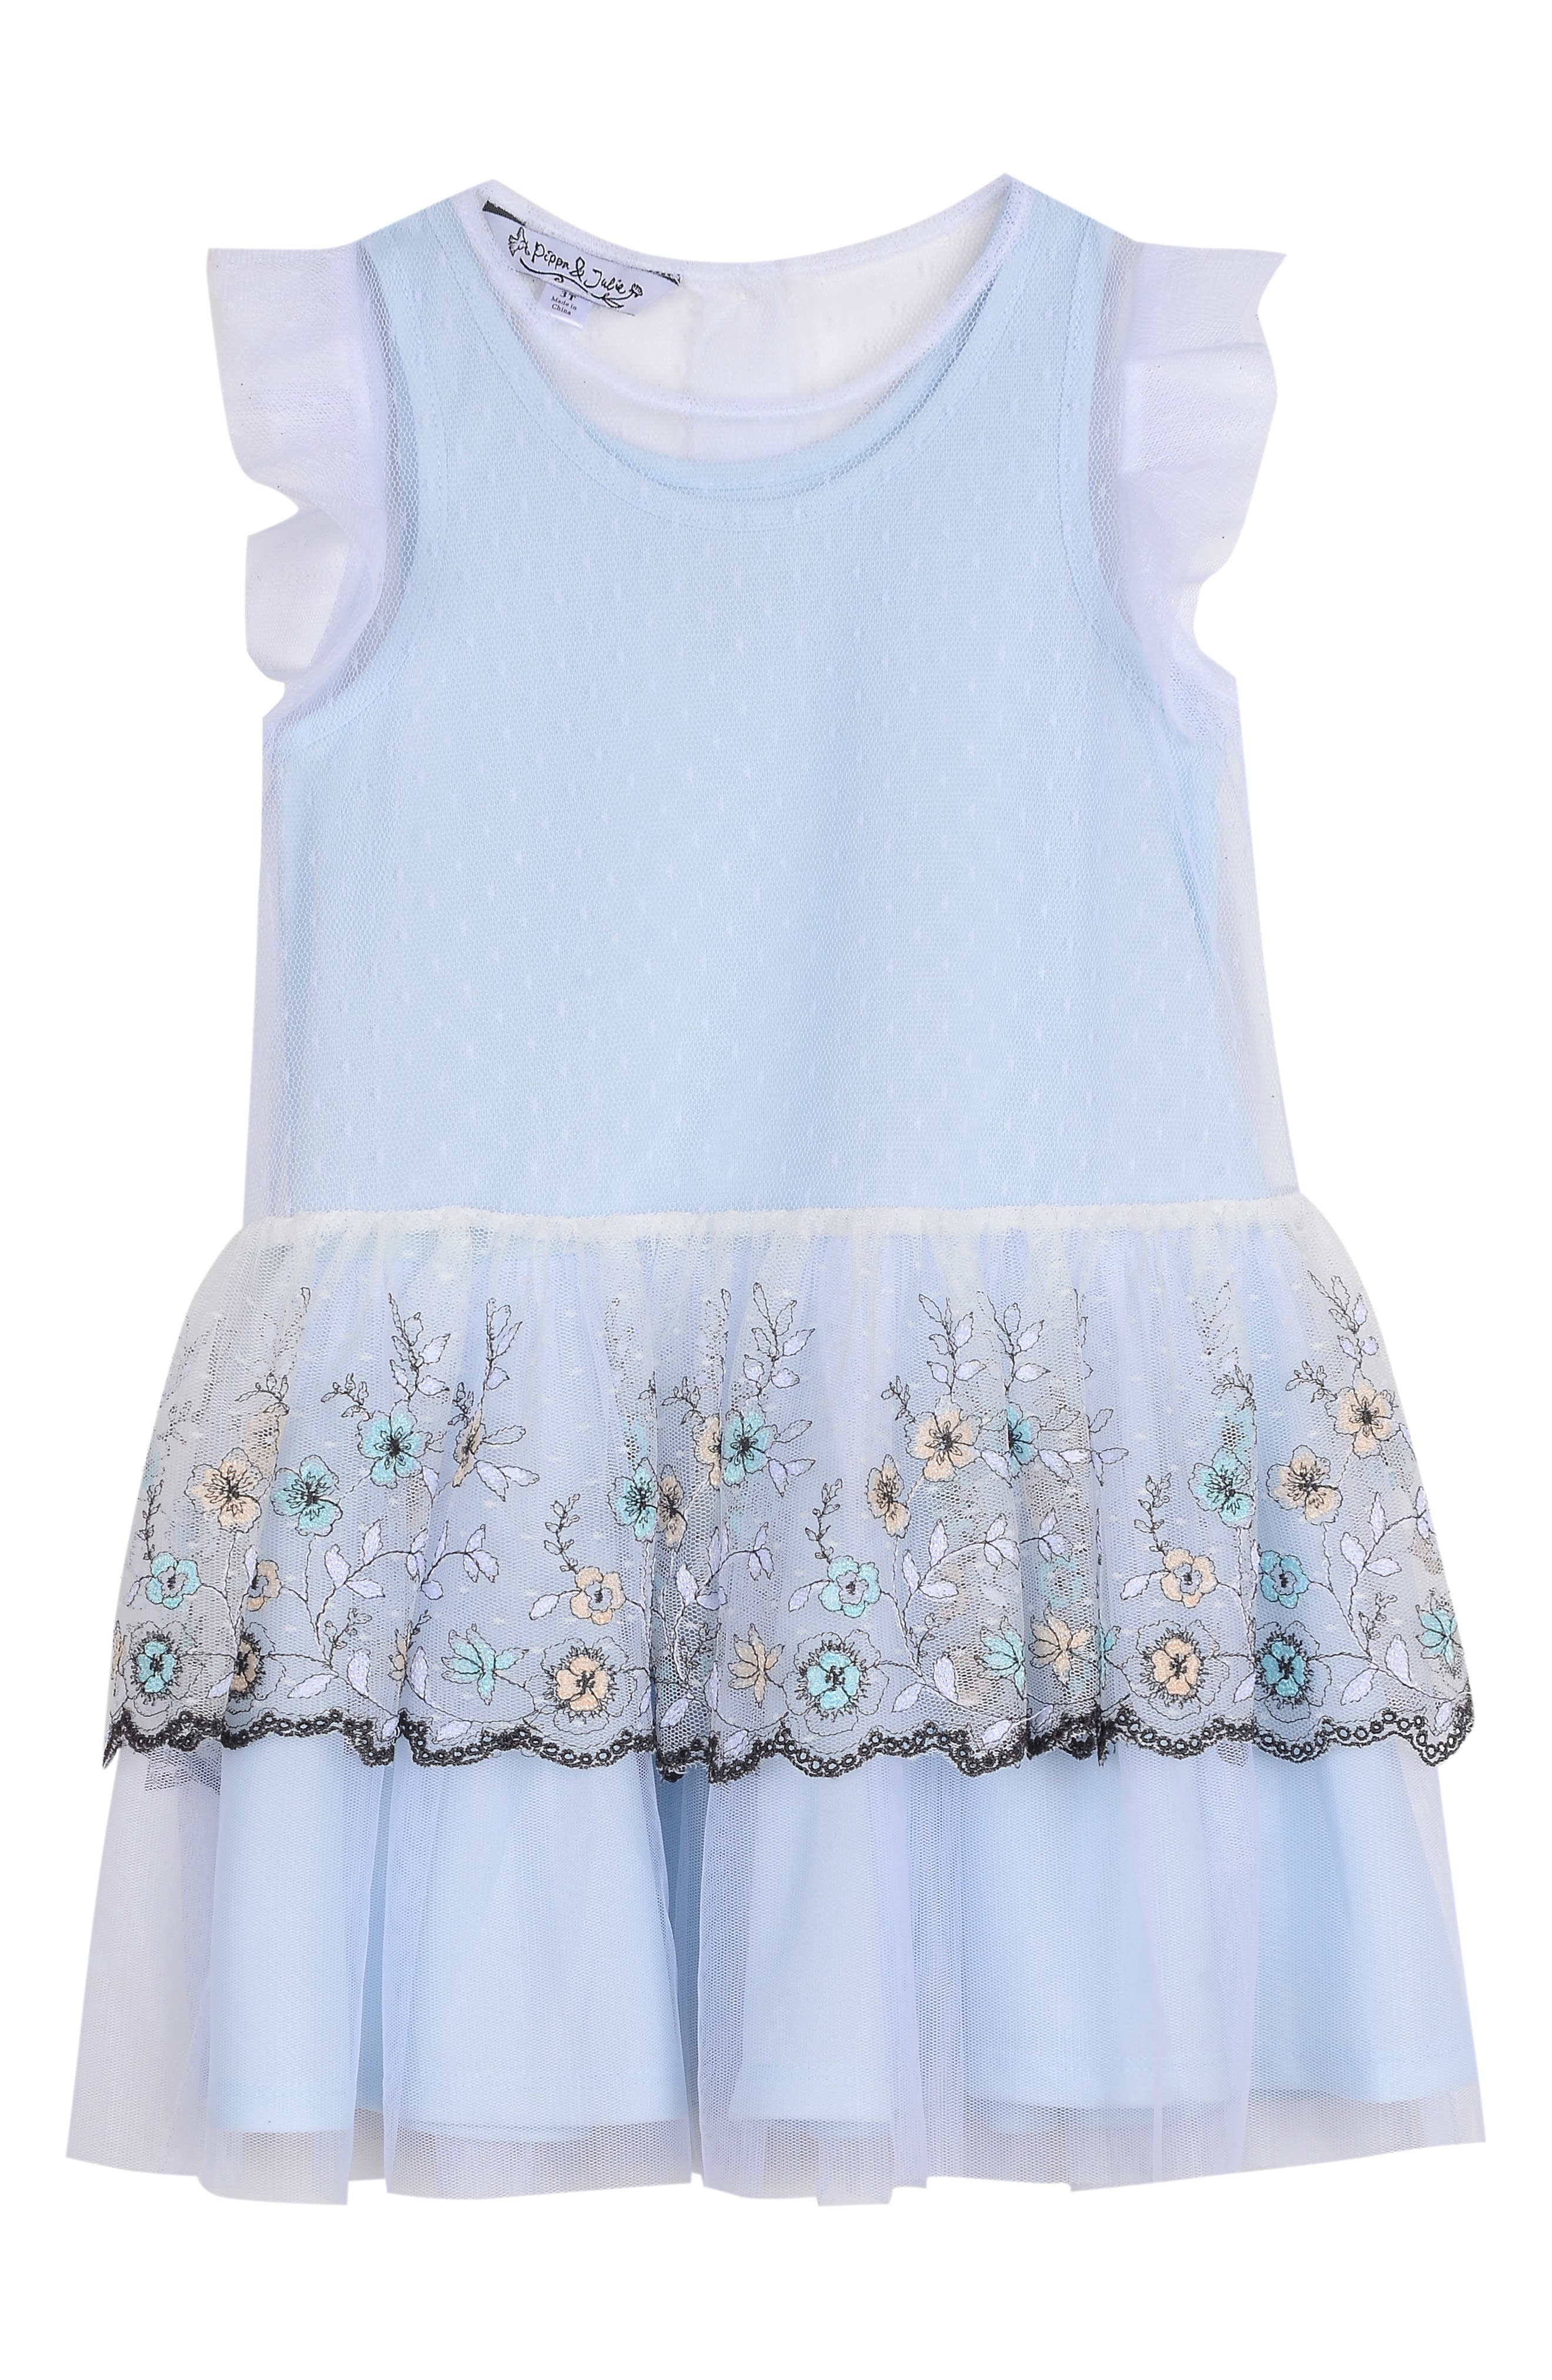 PIPPA & JULIE Tulle Tier Overlay Dress, Main, color, LIGHT BLUE